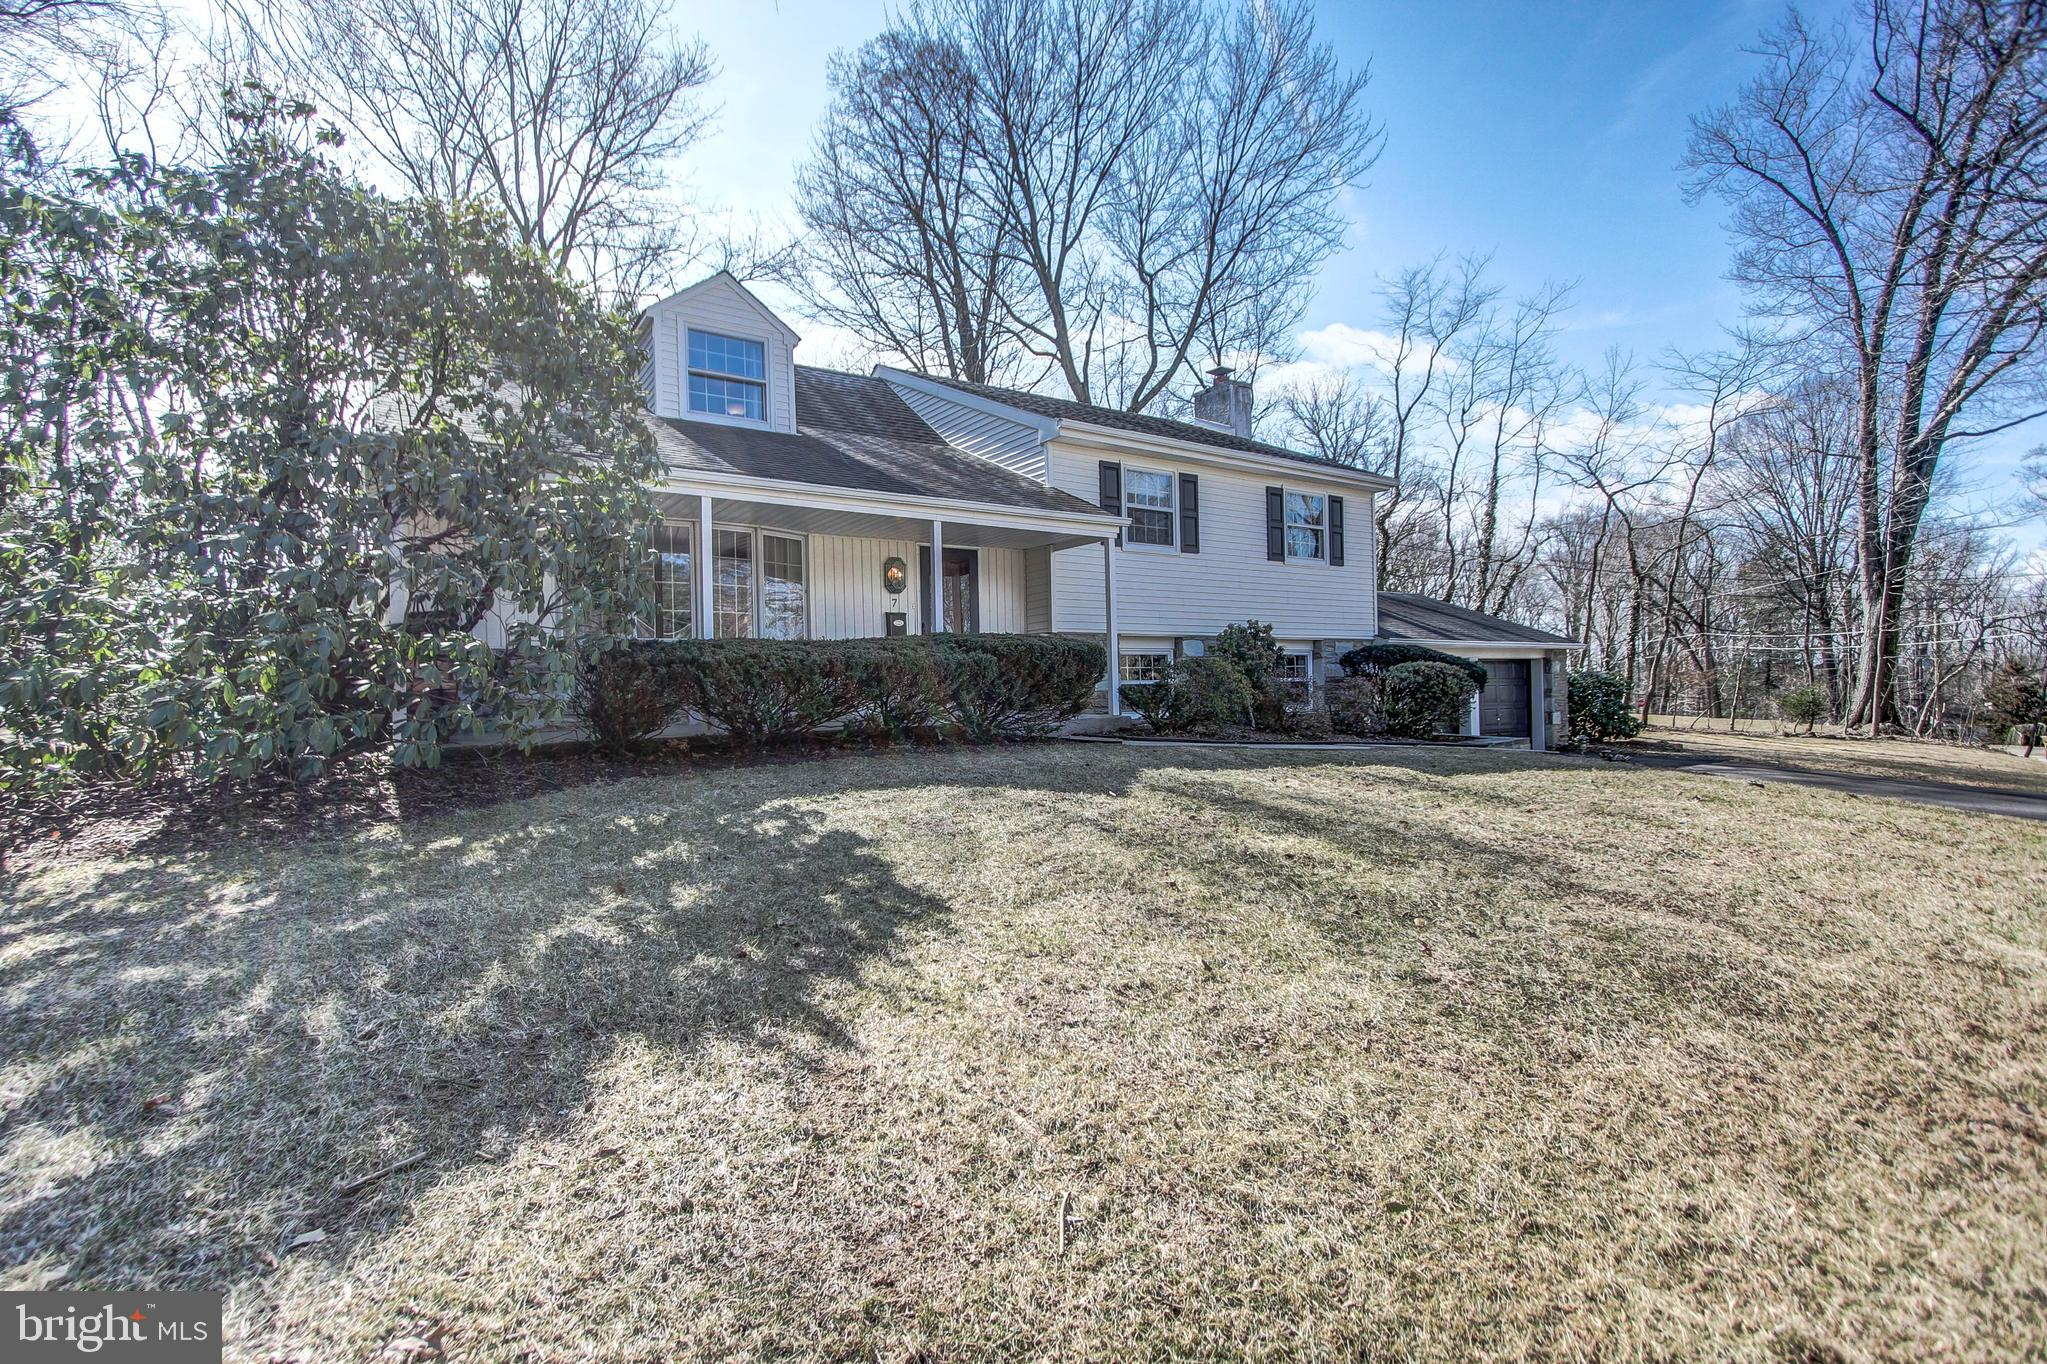 7 GALWAY PLACE, DRESHER, PA 19025